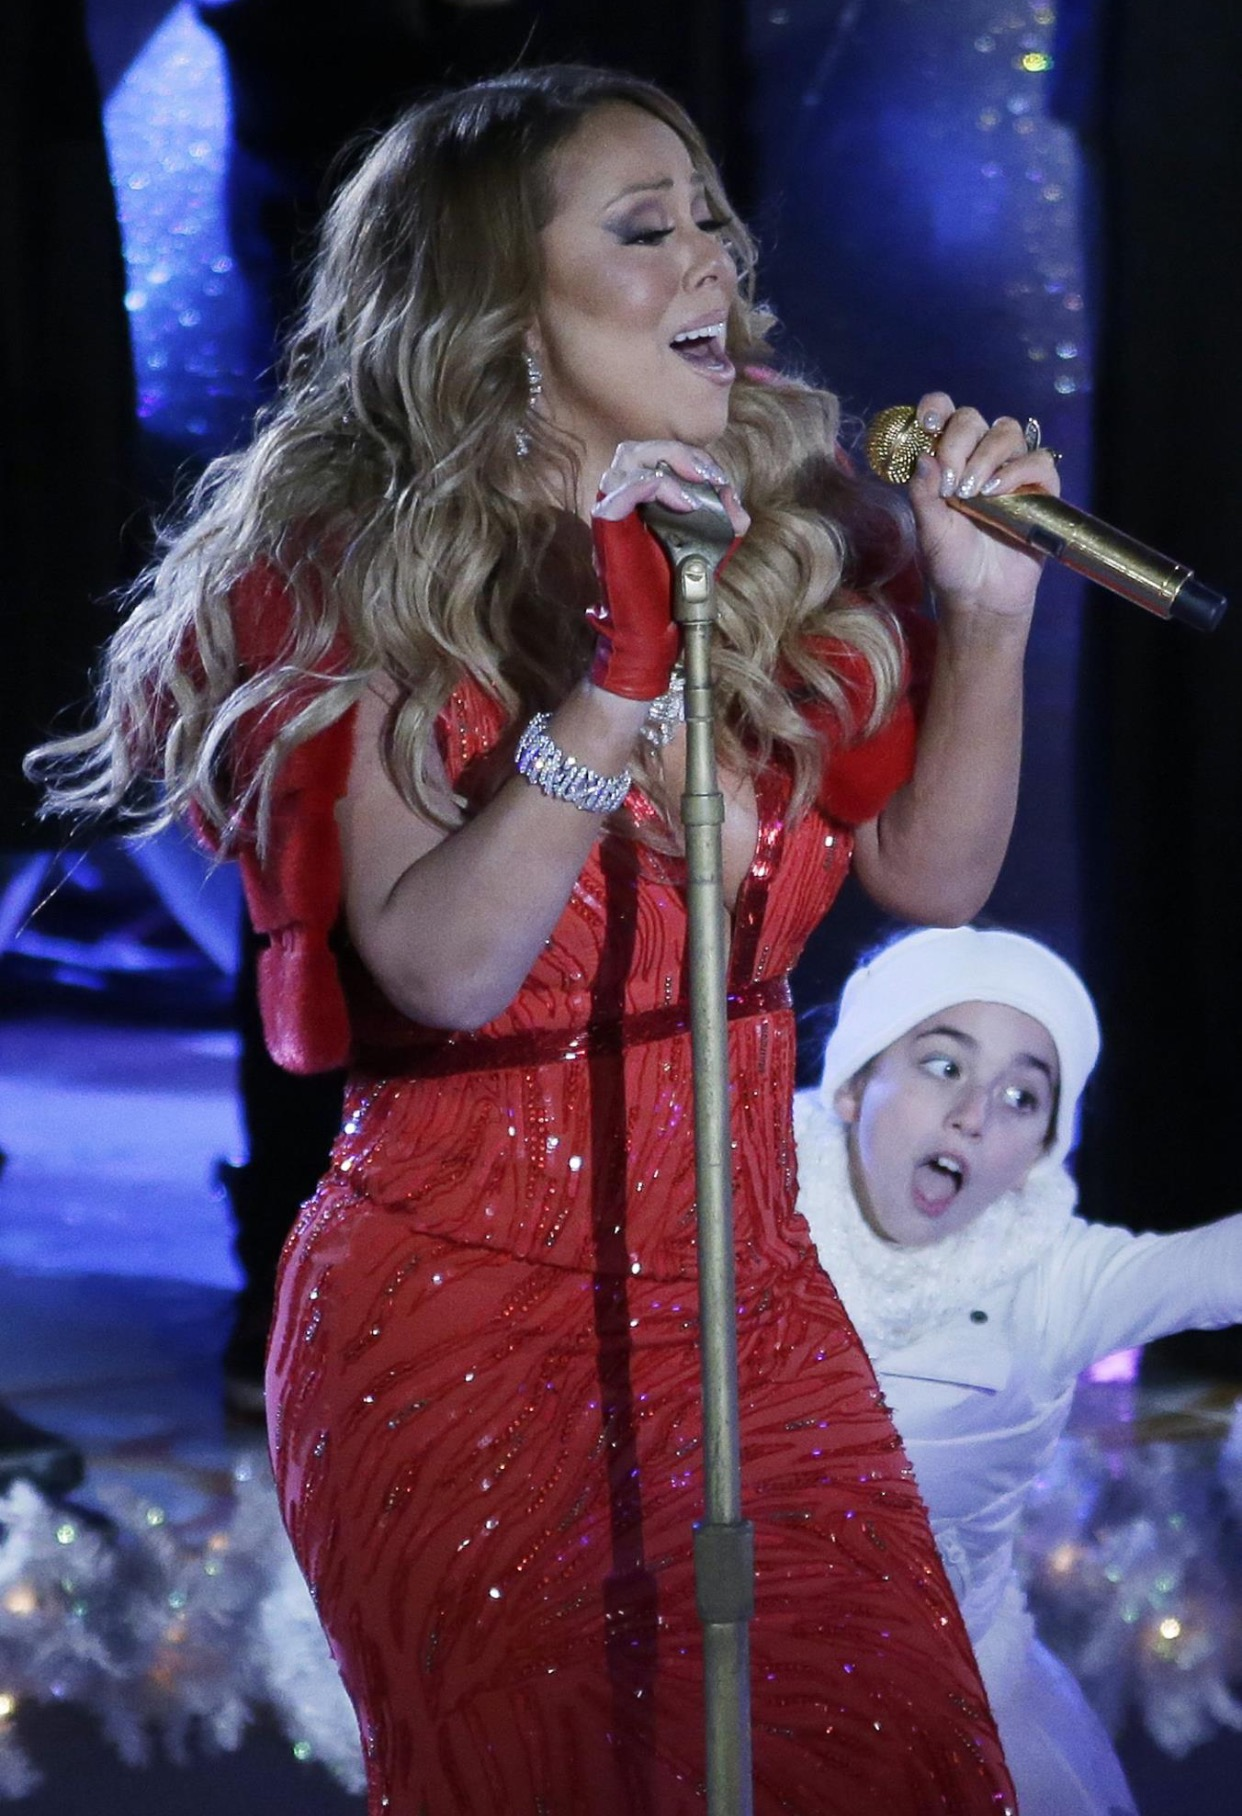 G playing peek-a-boo with Mariah 2014.png